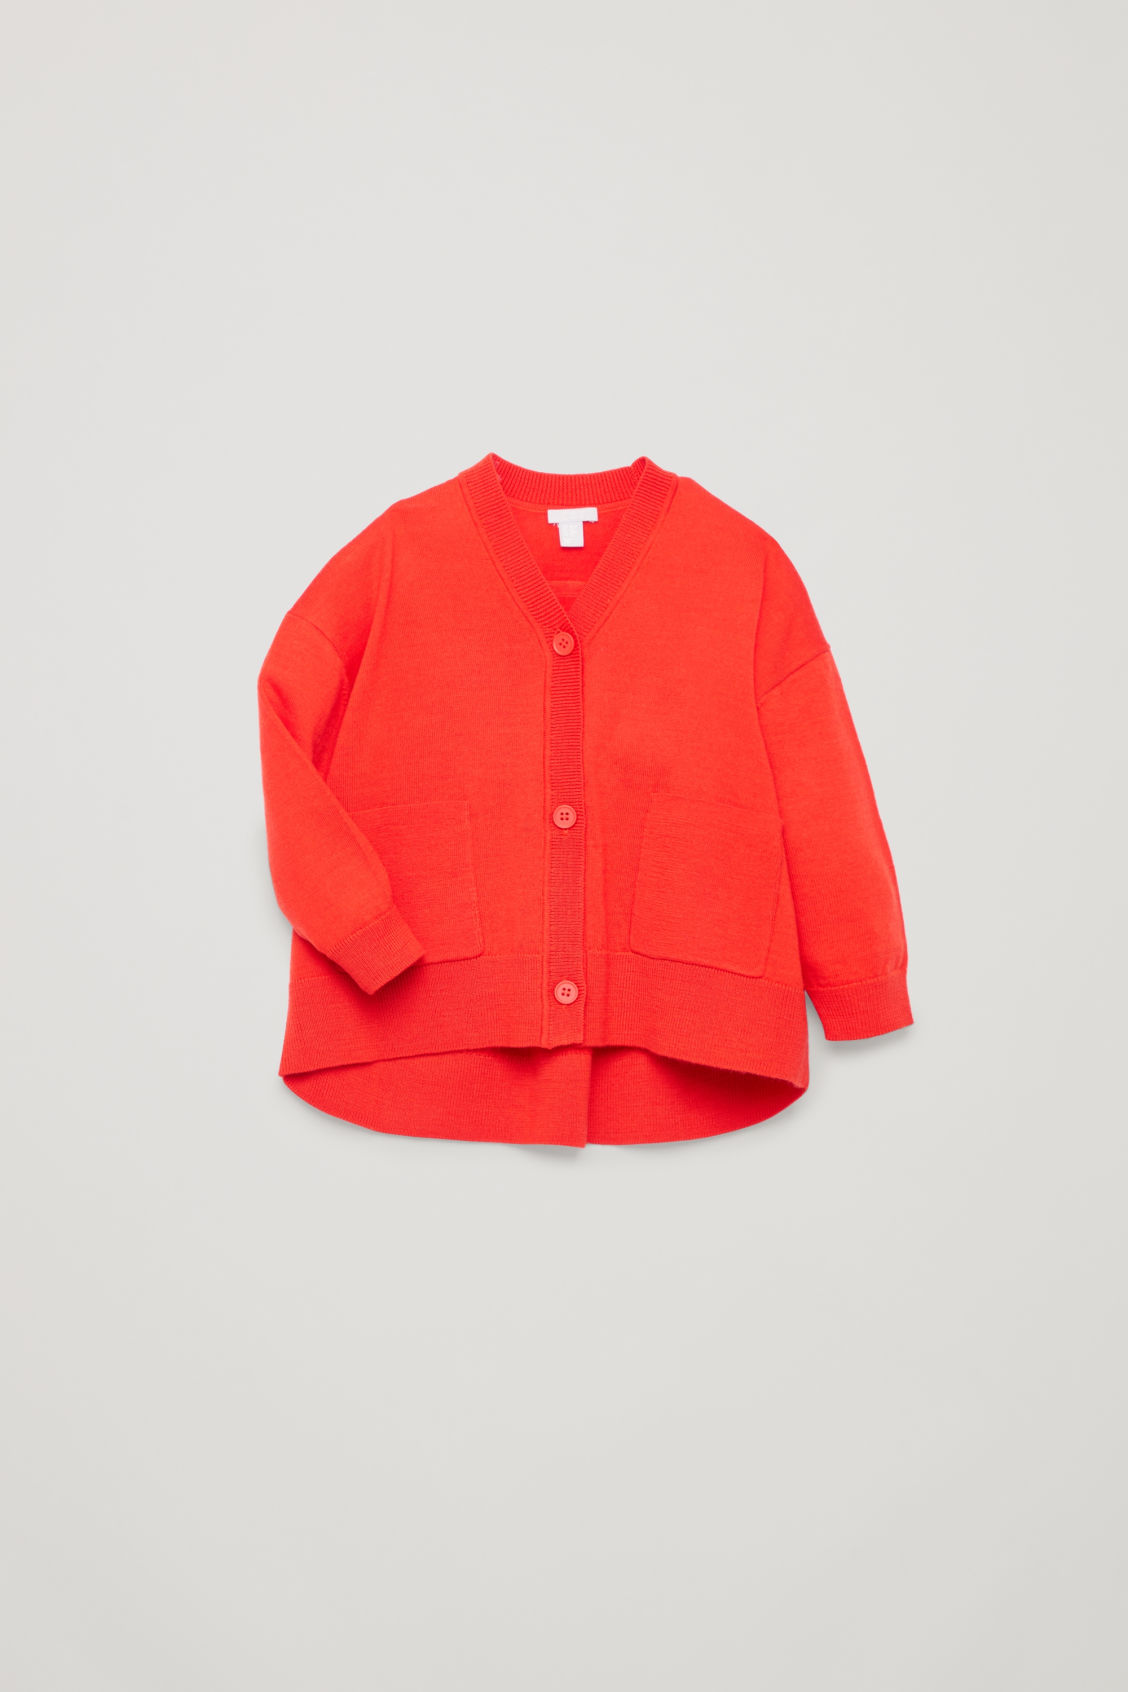 Detailed image of Cos curved merino-wool cardigan in orange